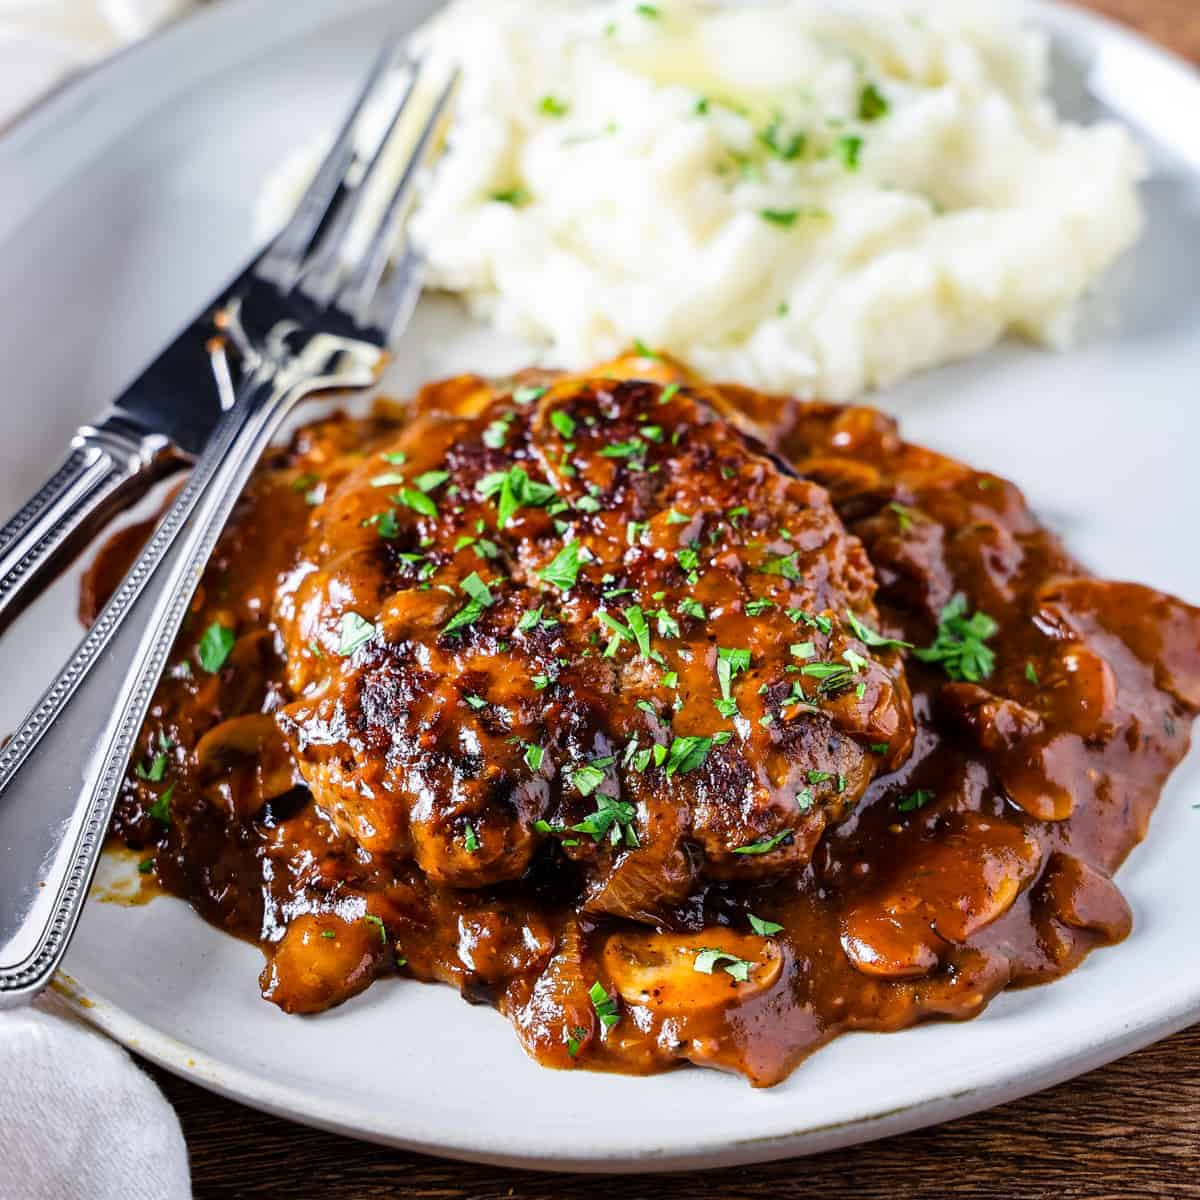 Side angle view showing Salisbury steak with mushroom gravy and served with mashed potatoes.